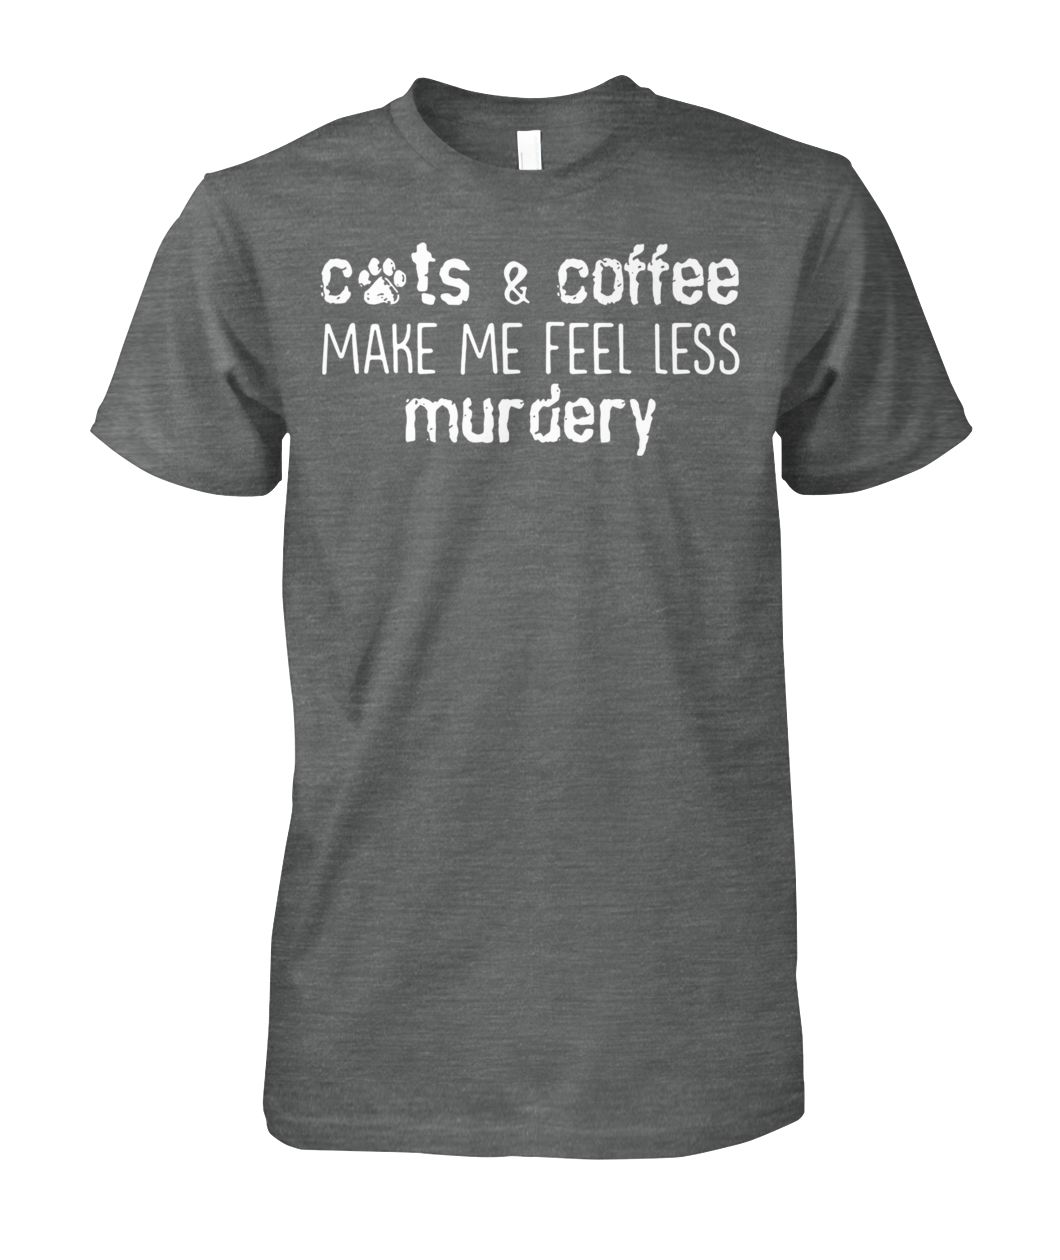 [Hot version] Cats and coffee make me feel less murdery shirt